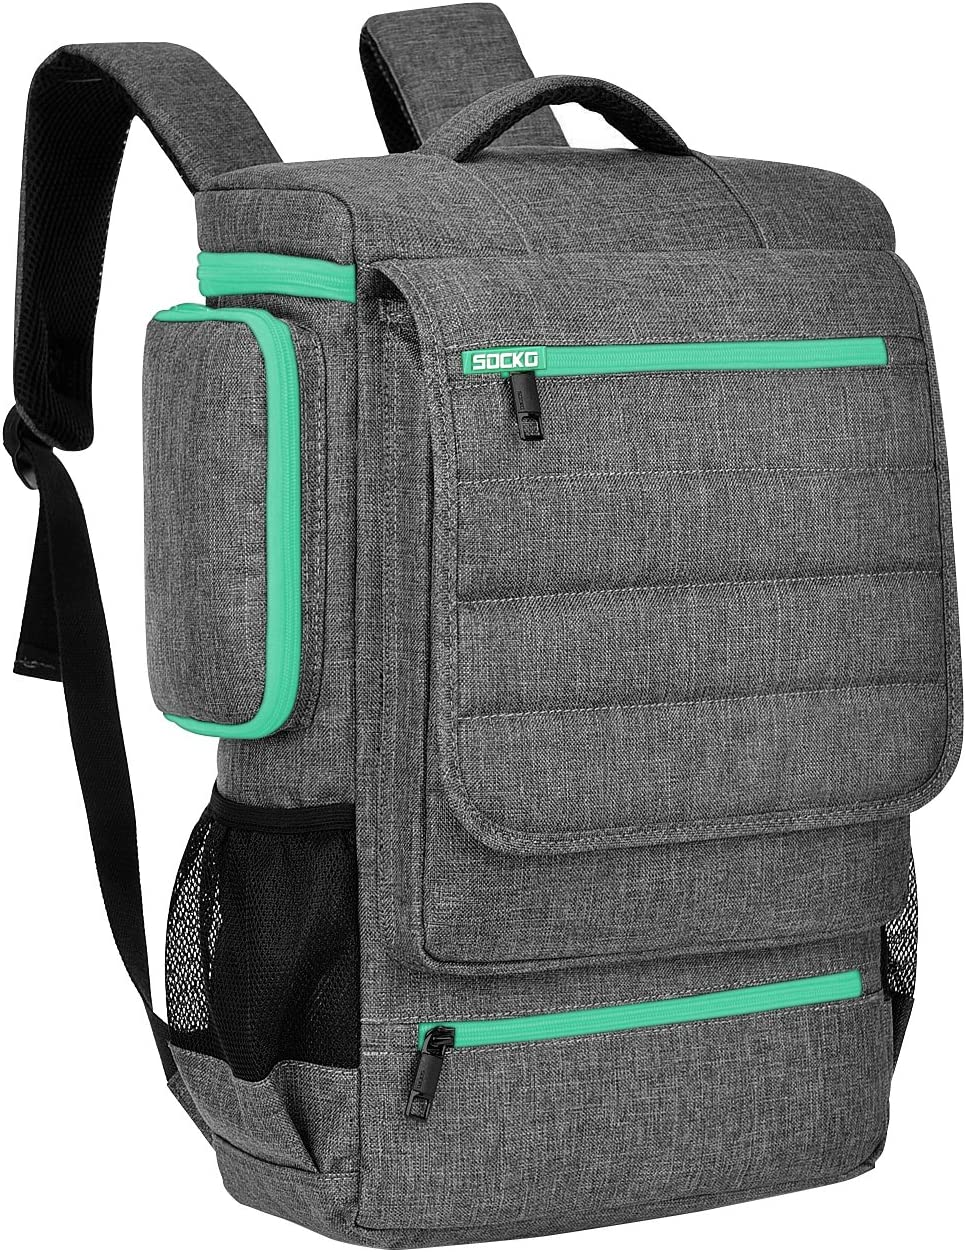 Laptop Backpack 17.3 Inch,BRINCH Water Resistant Travel Backpack for Men Women Luggage Rucksack Hiking Knapsack College Shoulder Backpack Fits 17-17.3 Inch Laptop Notebook Computer, Grey-Green